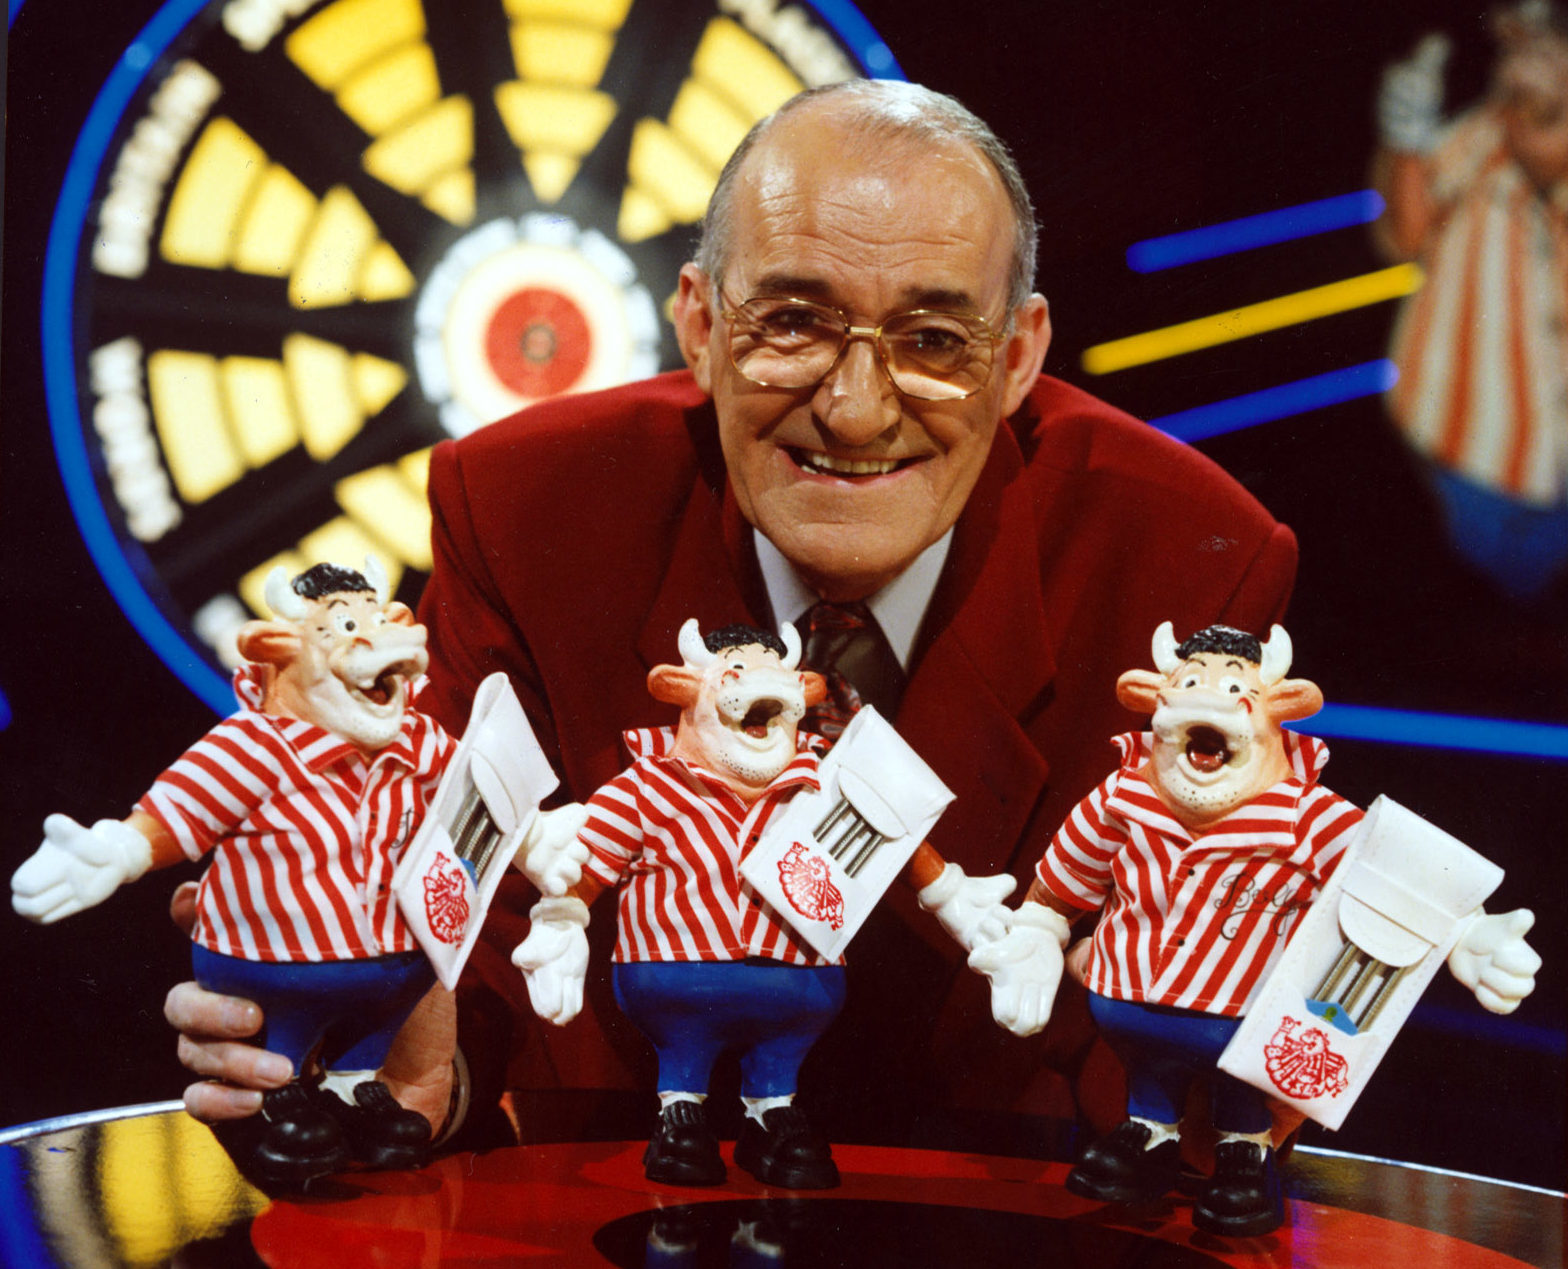 Former broadcaster and comedian Jim Bowen, best known for hosting television darts-based game show Bullseye, has died aged 80.